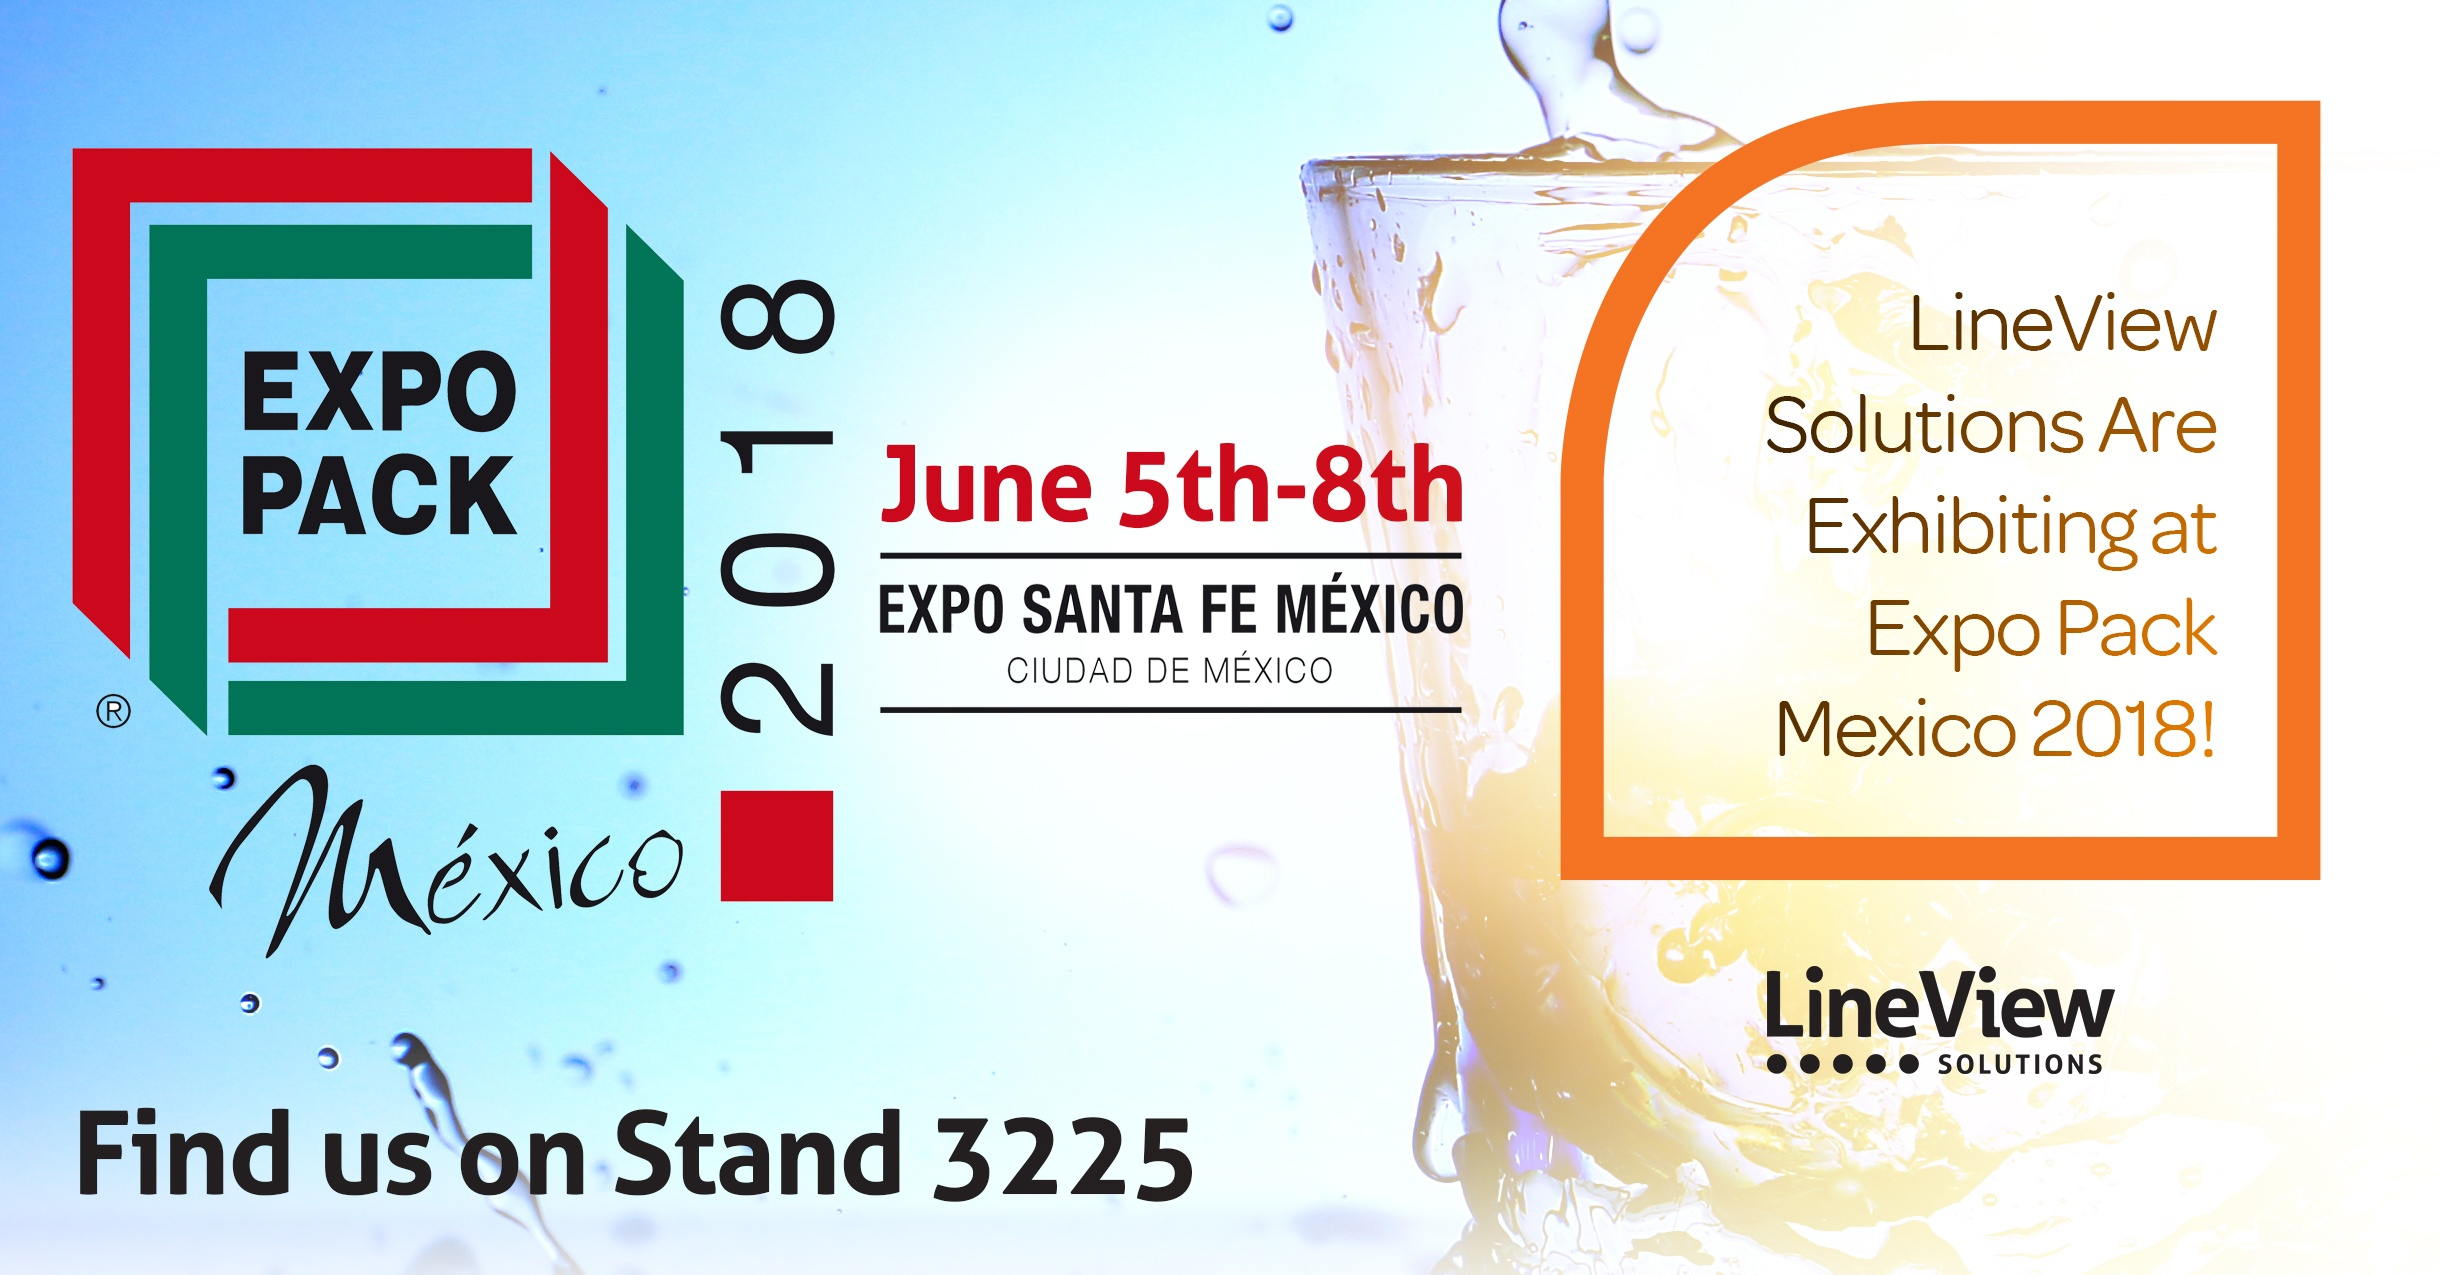 LVS - Expo Pack - Mexico 2018 (Web Banner).jpg